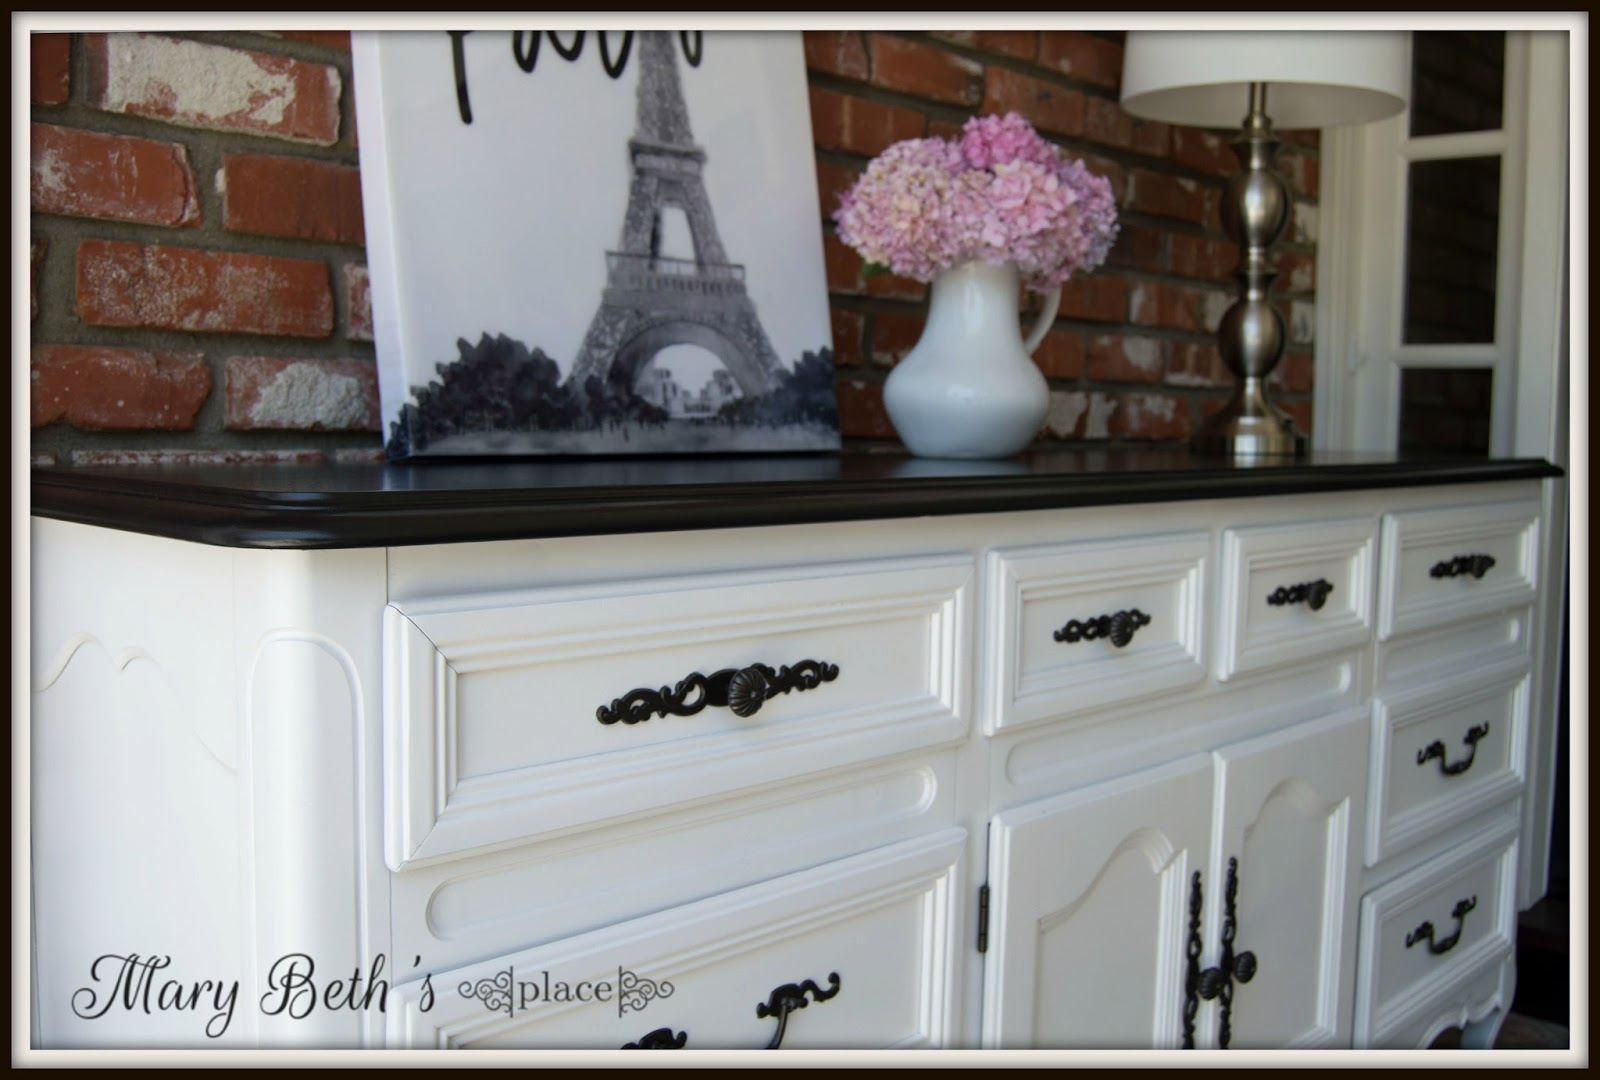 mary beth's place a classic black  white dresser - i used general finishes snow white for the body and drawers and lamp blackfor the top